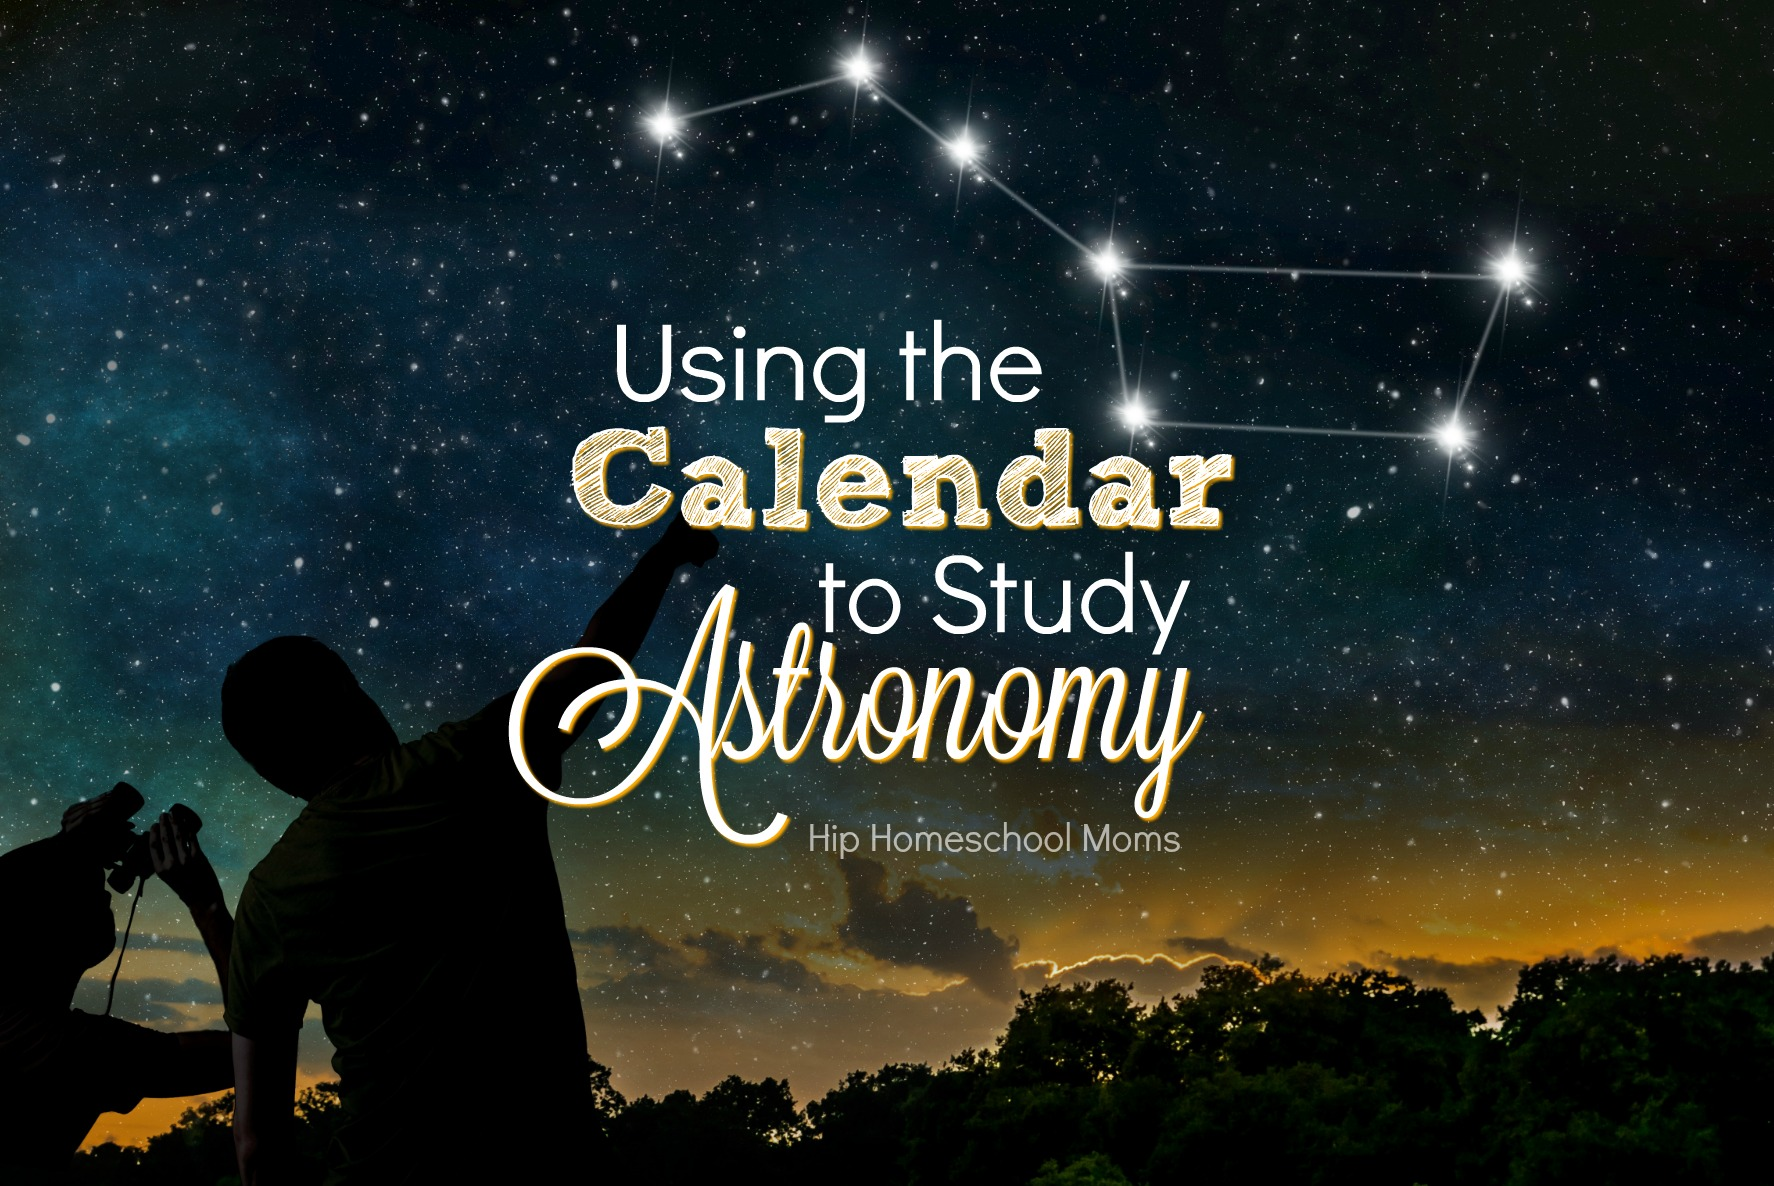 Using the Calendar to Study Astronomy